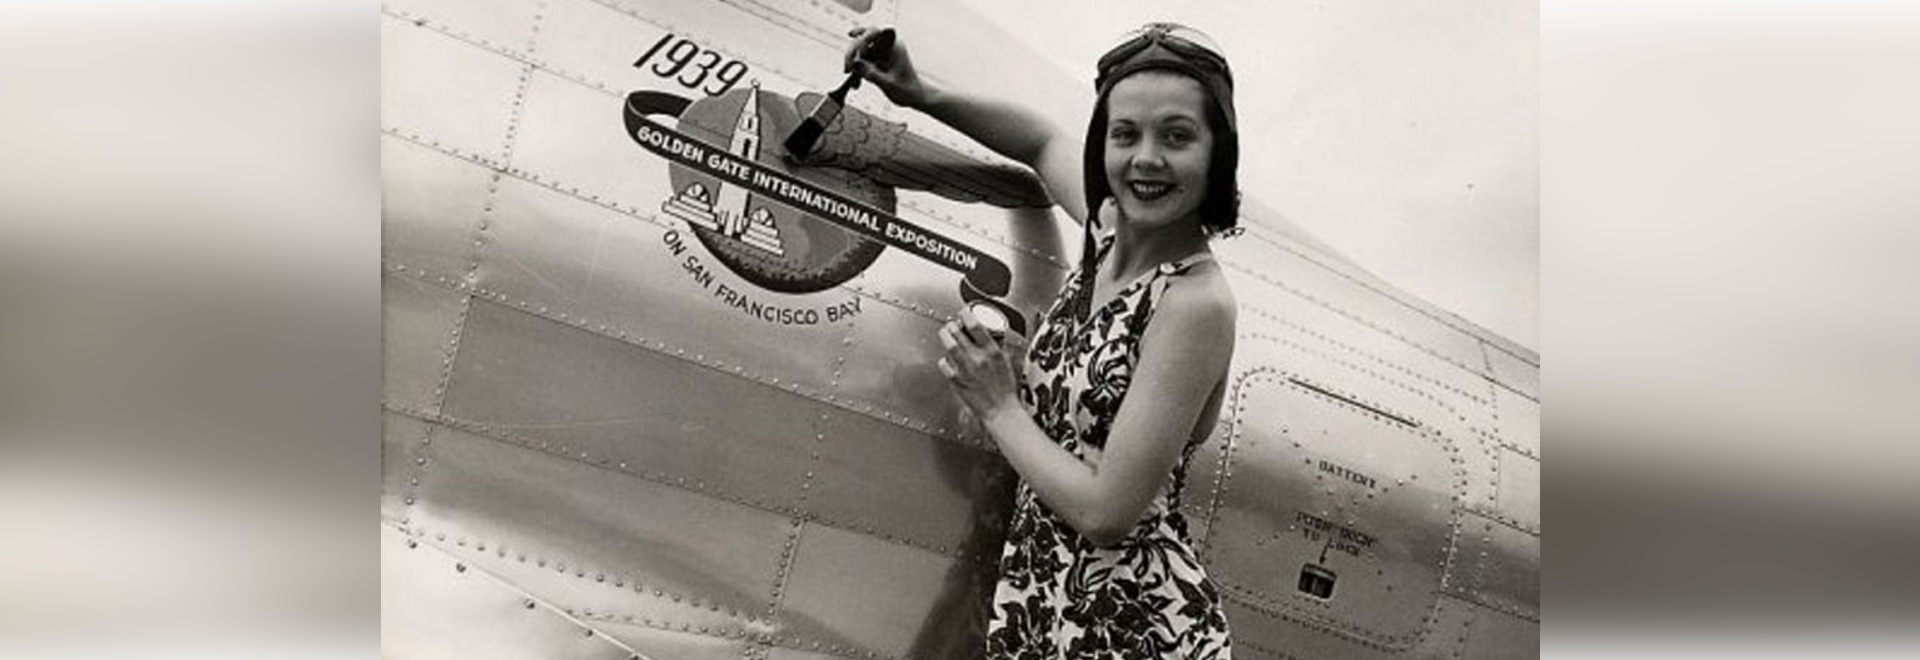 Zoe Dell Lantis Nutter traveled across the US in the late 1930s promoting commercial aviation on United's DC-3s.